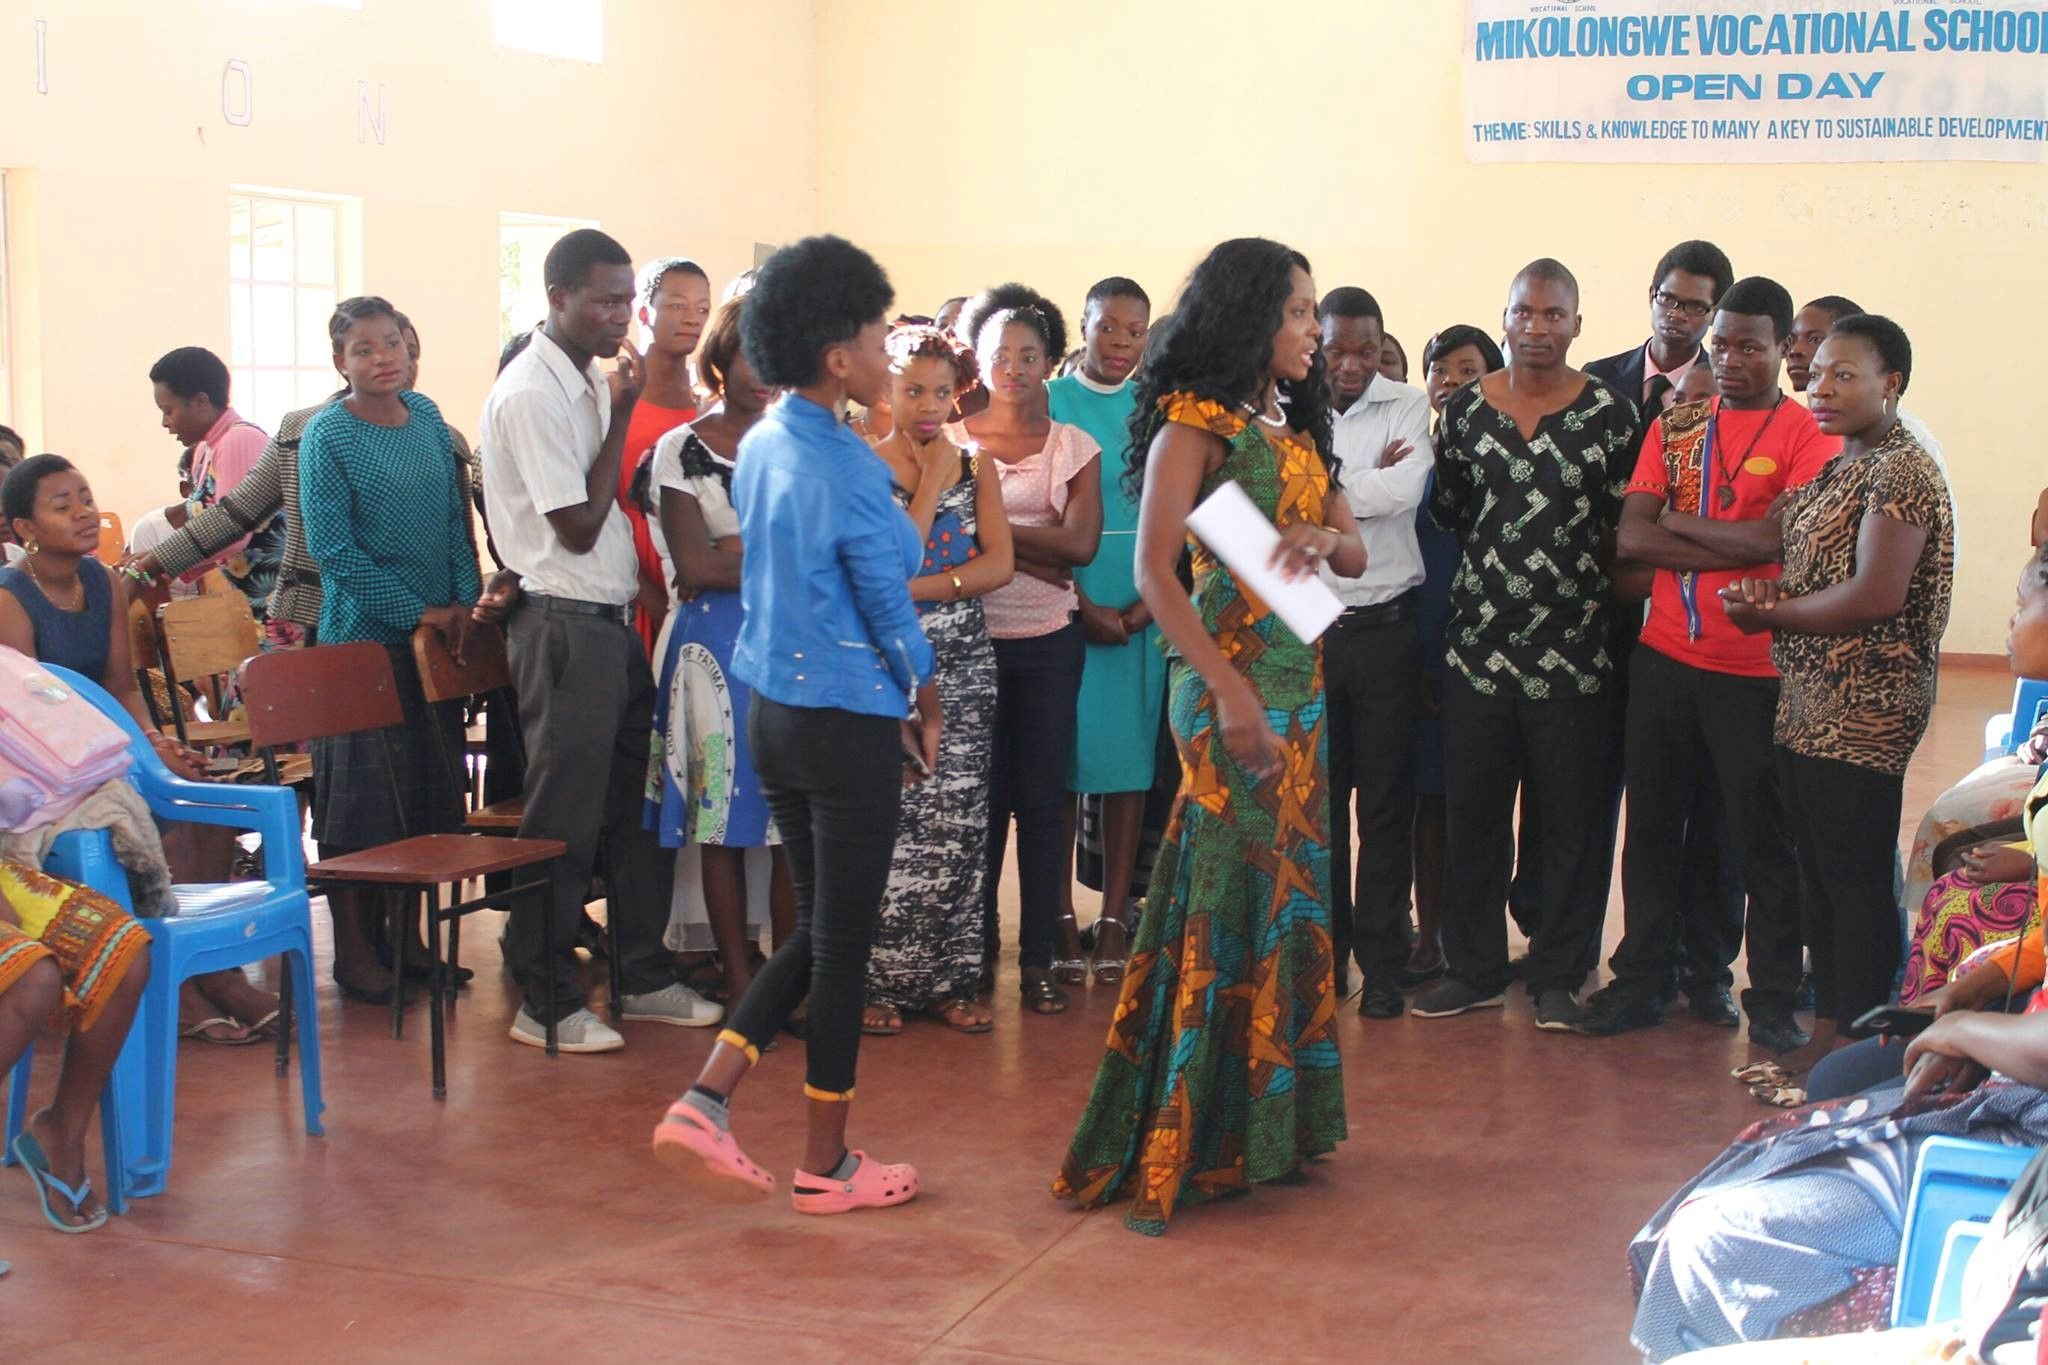 local-top-designer-lily-alfonso-inspires-youth-at-dapp-mikolongwe-vocational-school